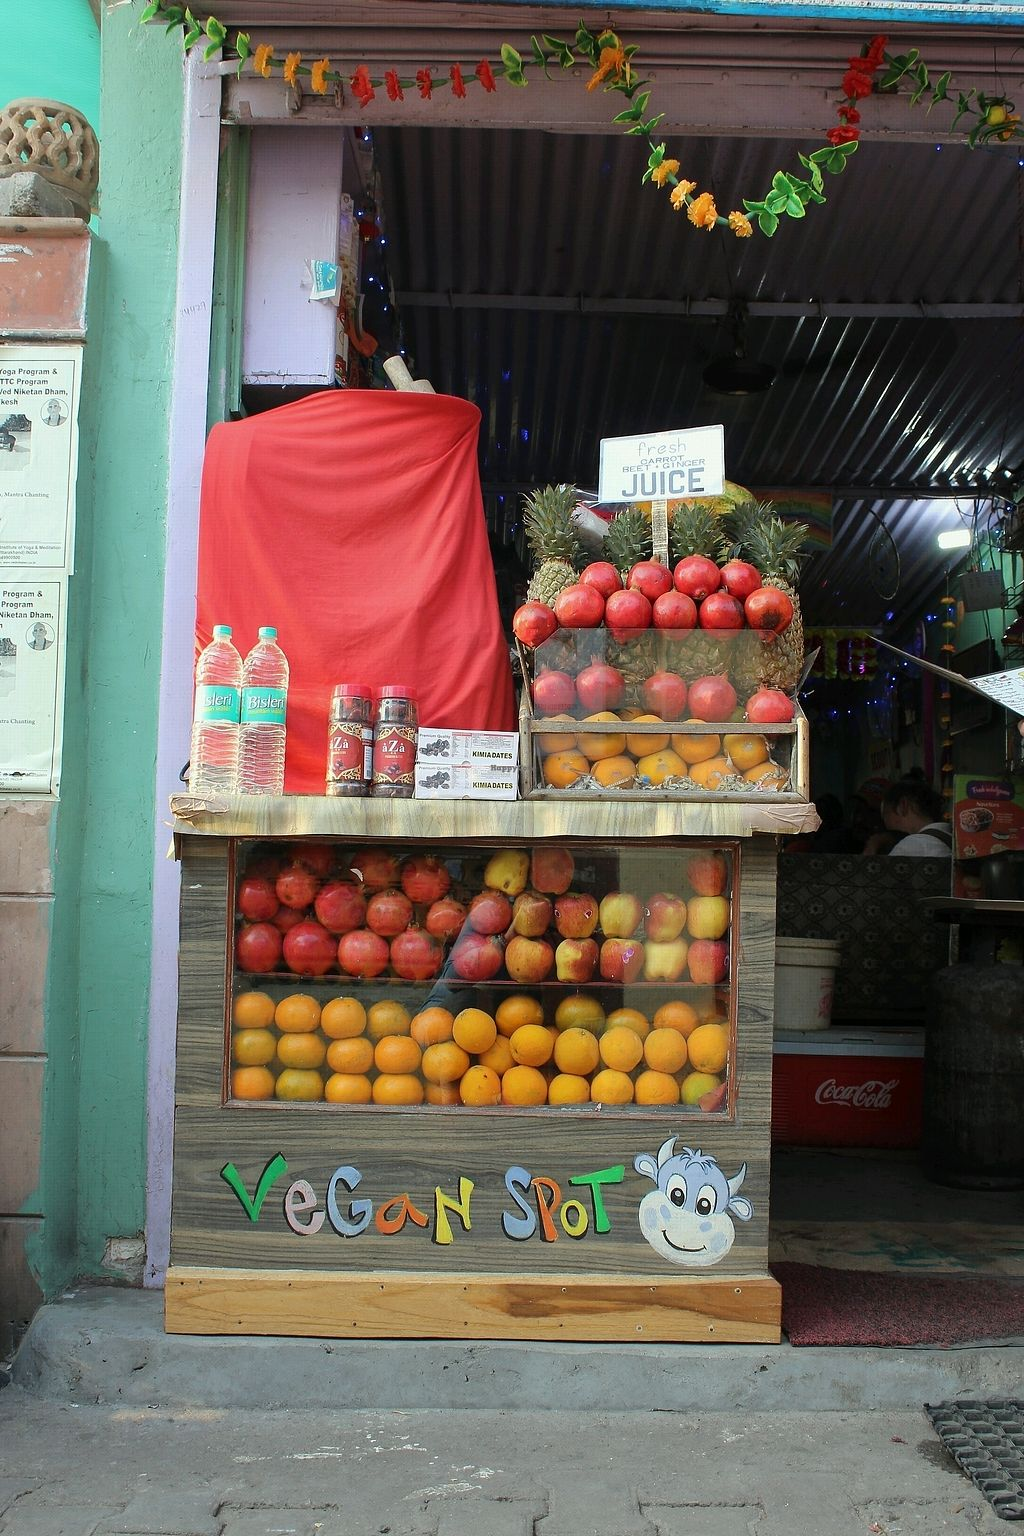 "Photo of The Juice House  by <a href=""/members/profile/Sassyvegan"">Sassyvegan</a> <br/>Shop front <br/> January 6, 2018  - <a href='/contact/abuse/image/43343/343571'>Report</a>"